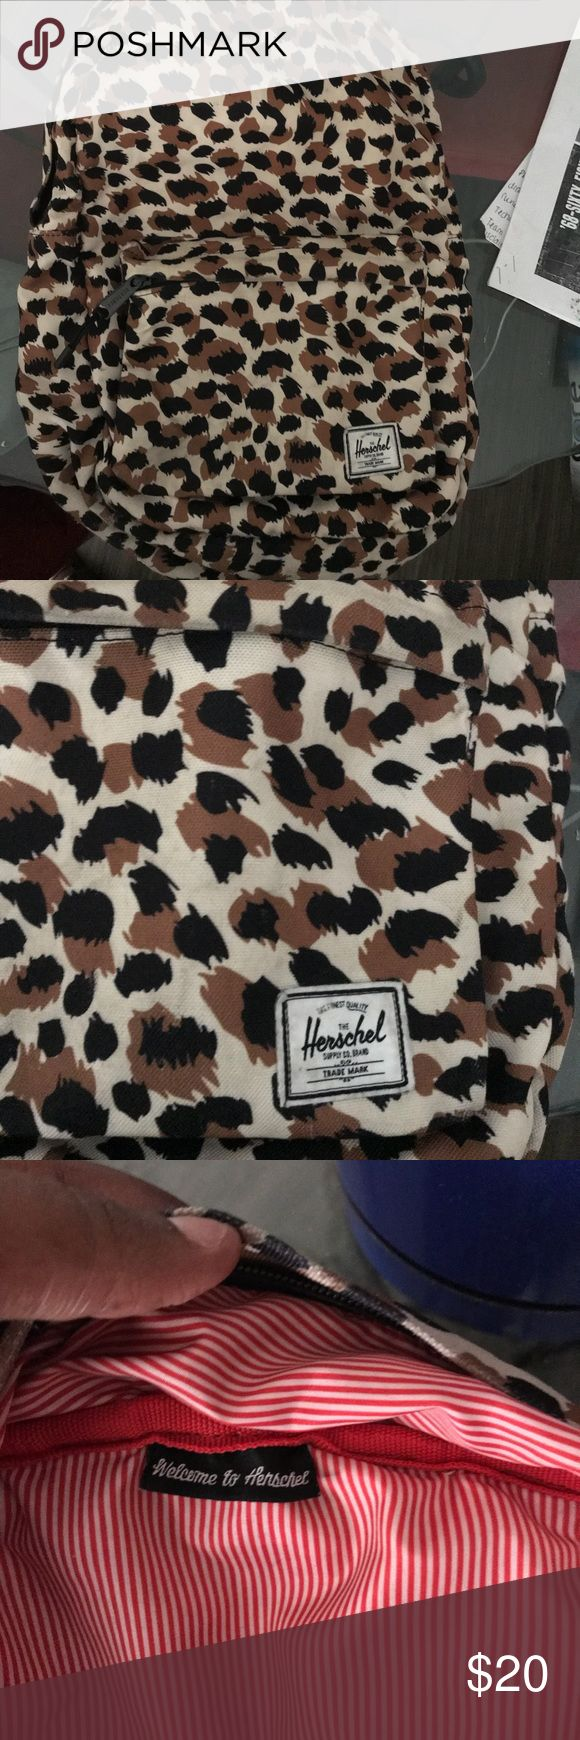 Adorable cheetah print Herschel bookbag Cute great condition Herschel book bag perfect and trendy for school.  Very comfortable straps on shoulders. Herschel Supply Company Bags Backpacks